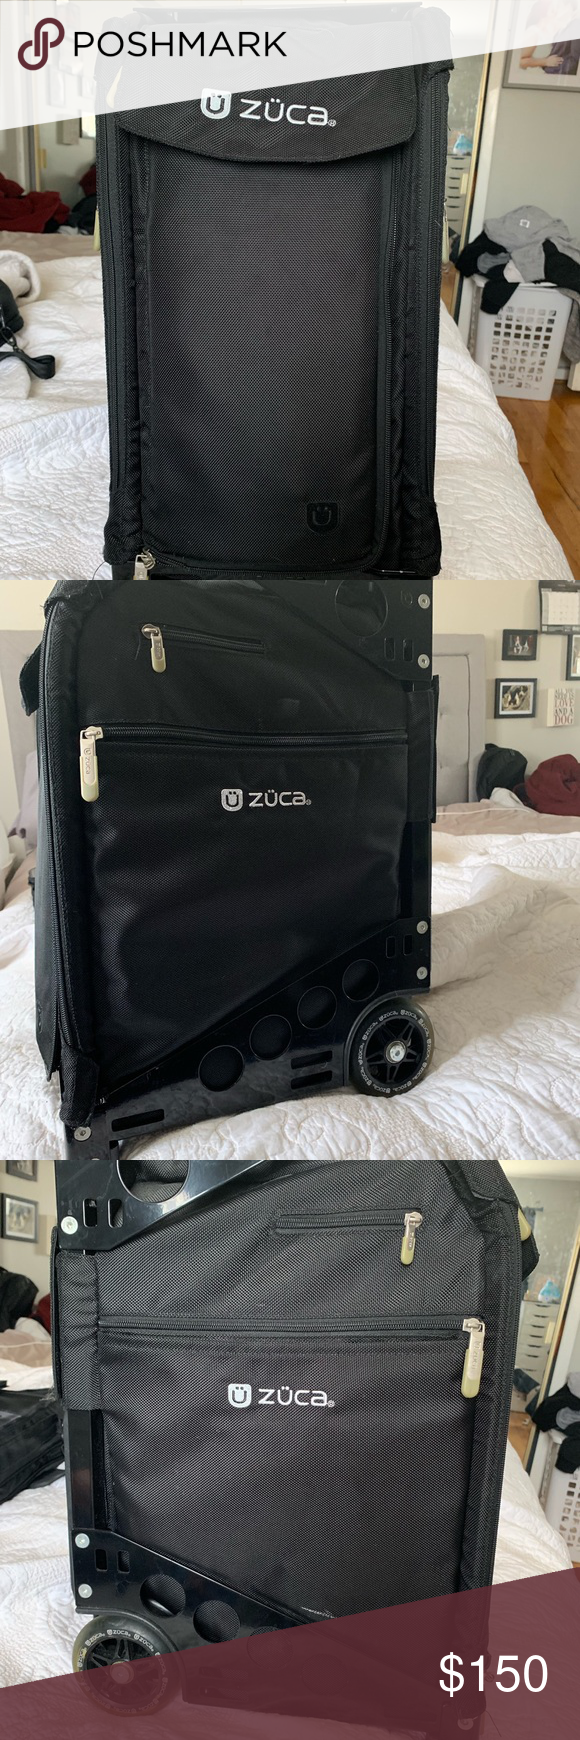 ZUCA Train Case ZUCA Professional Travel Case I used this